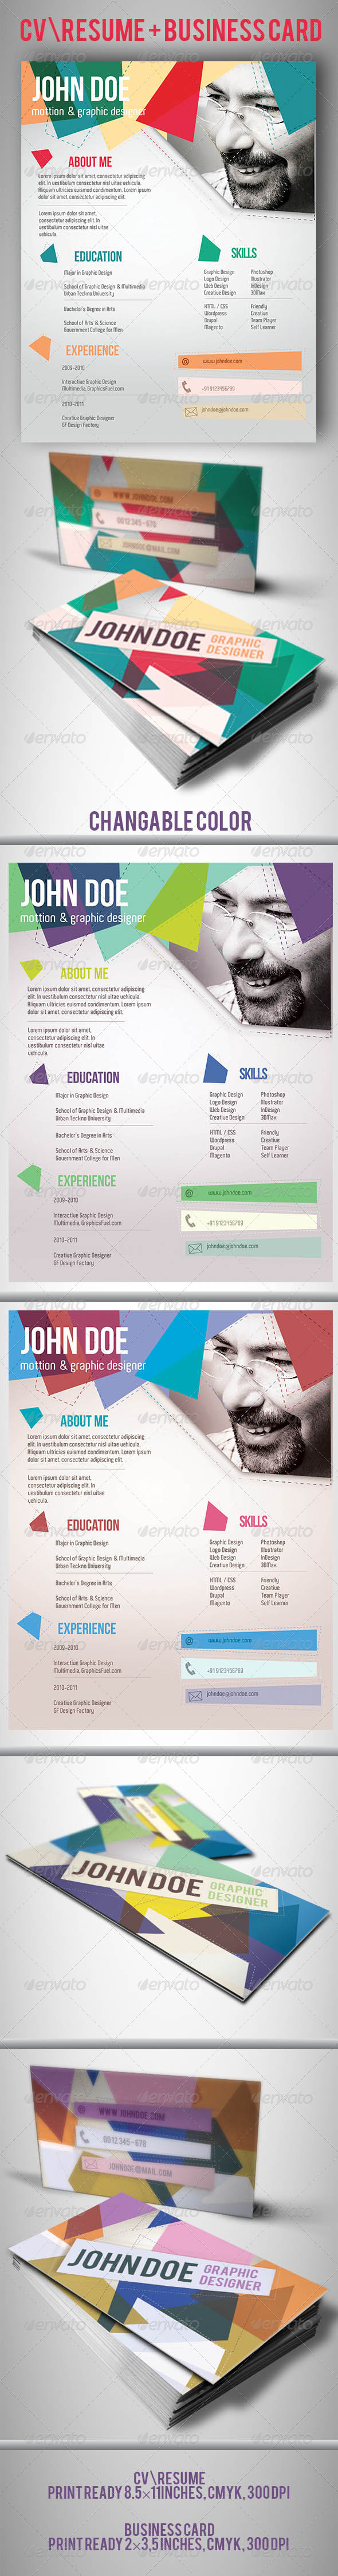 GraphicRiver CV Resume and Business Card Template 4577955